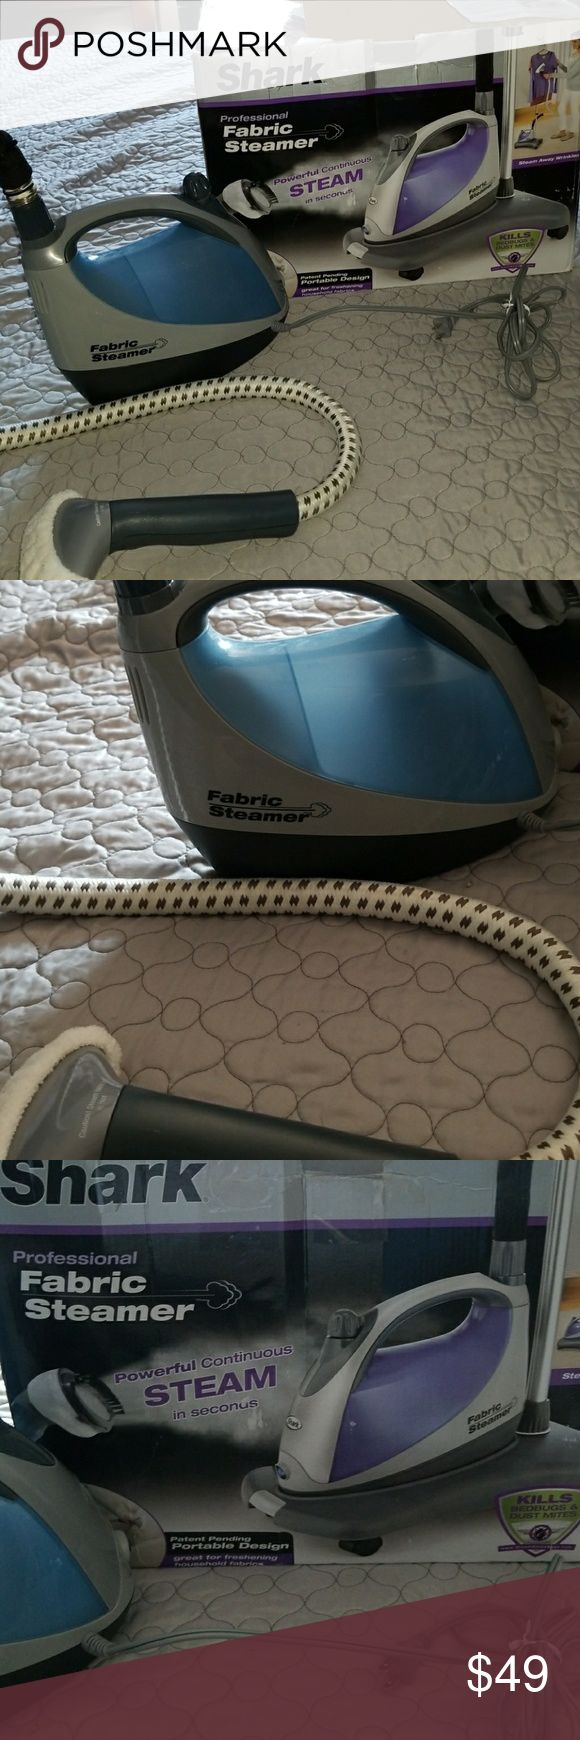 Professional Fabric Steamer Professional Steamer works on clothing, furniture, upholstery. Used once. SHARK Other